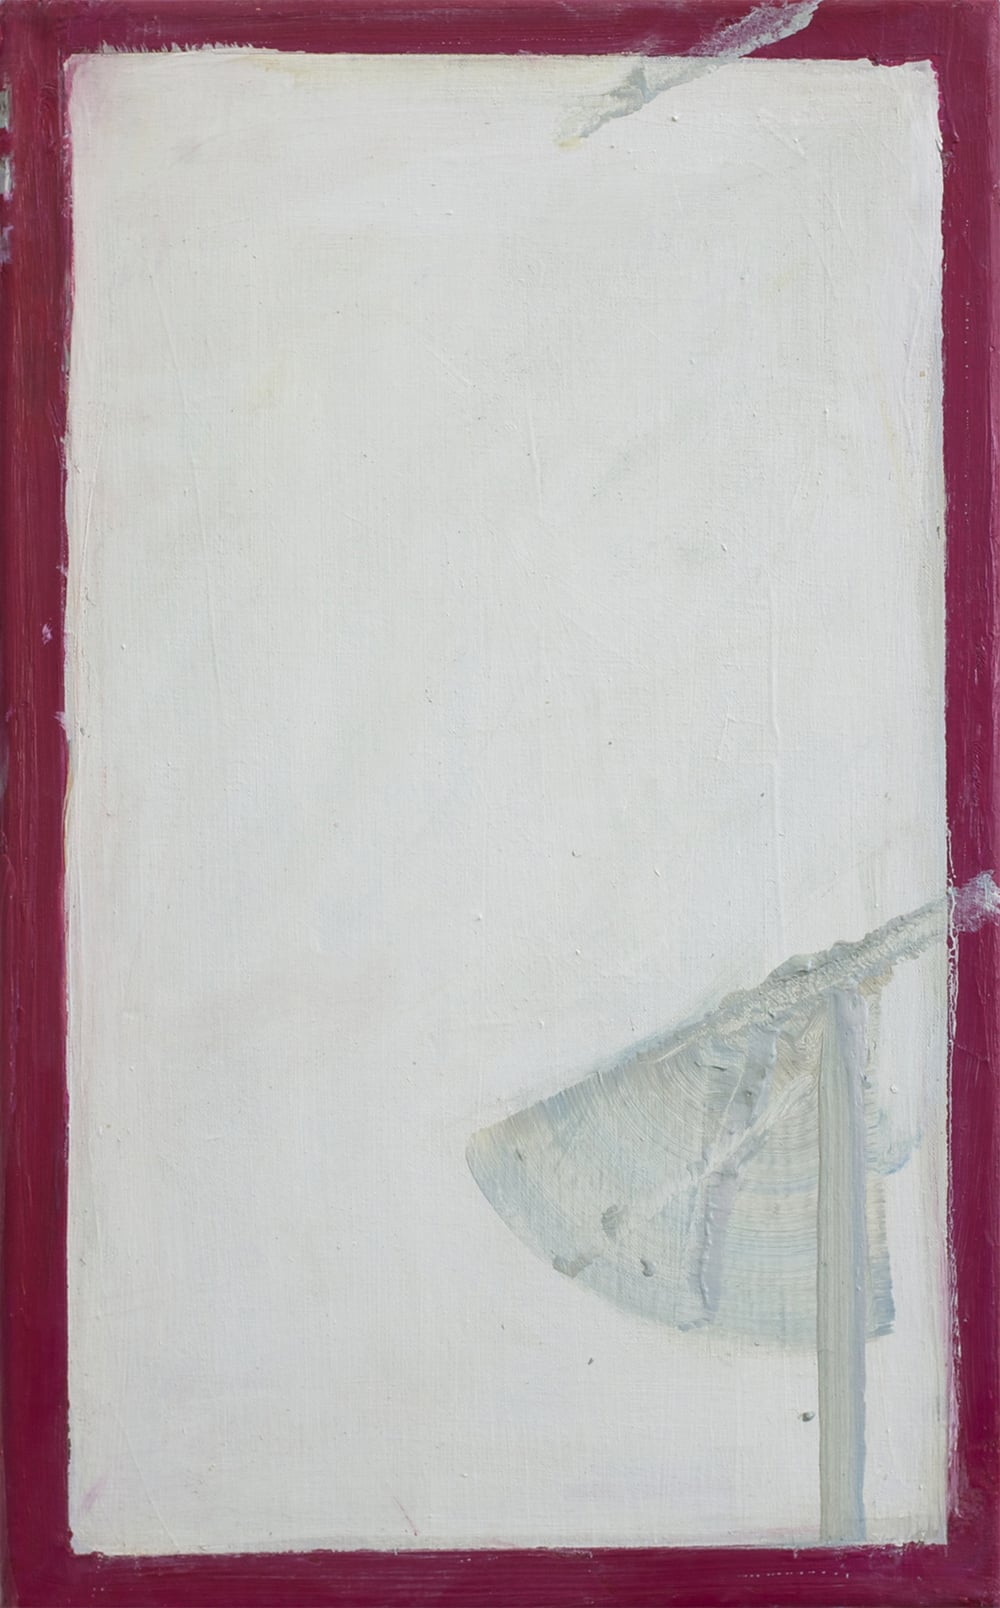 'Untitled' 2013 Oil on Linen 50 x 31 cm